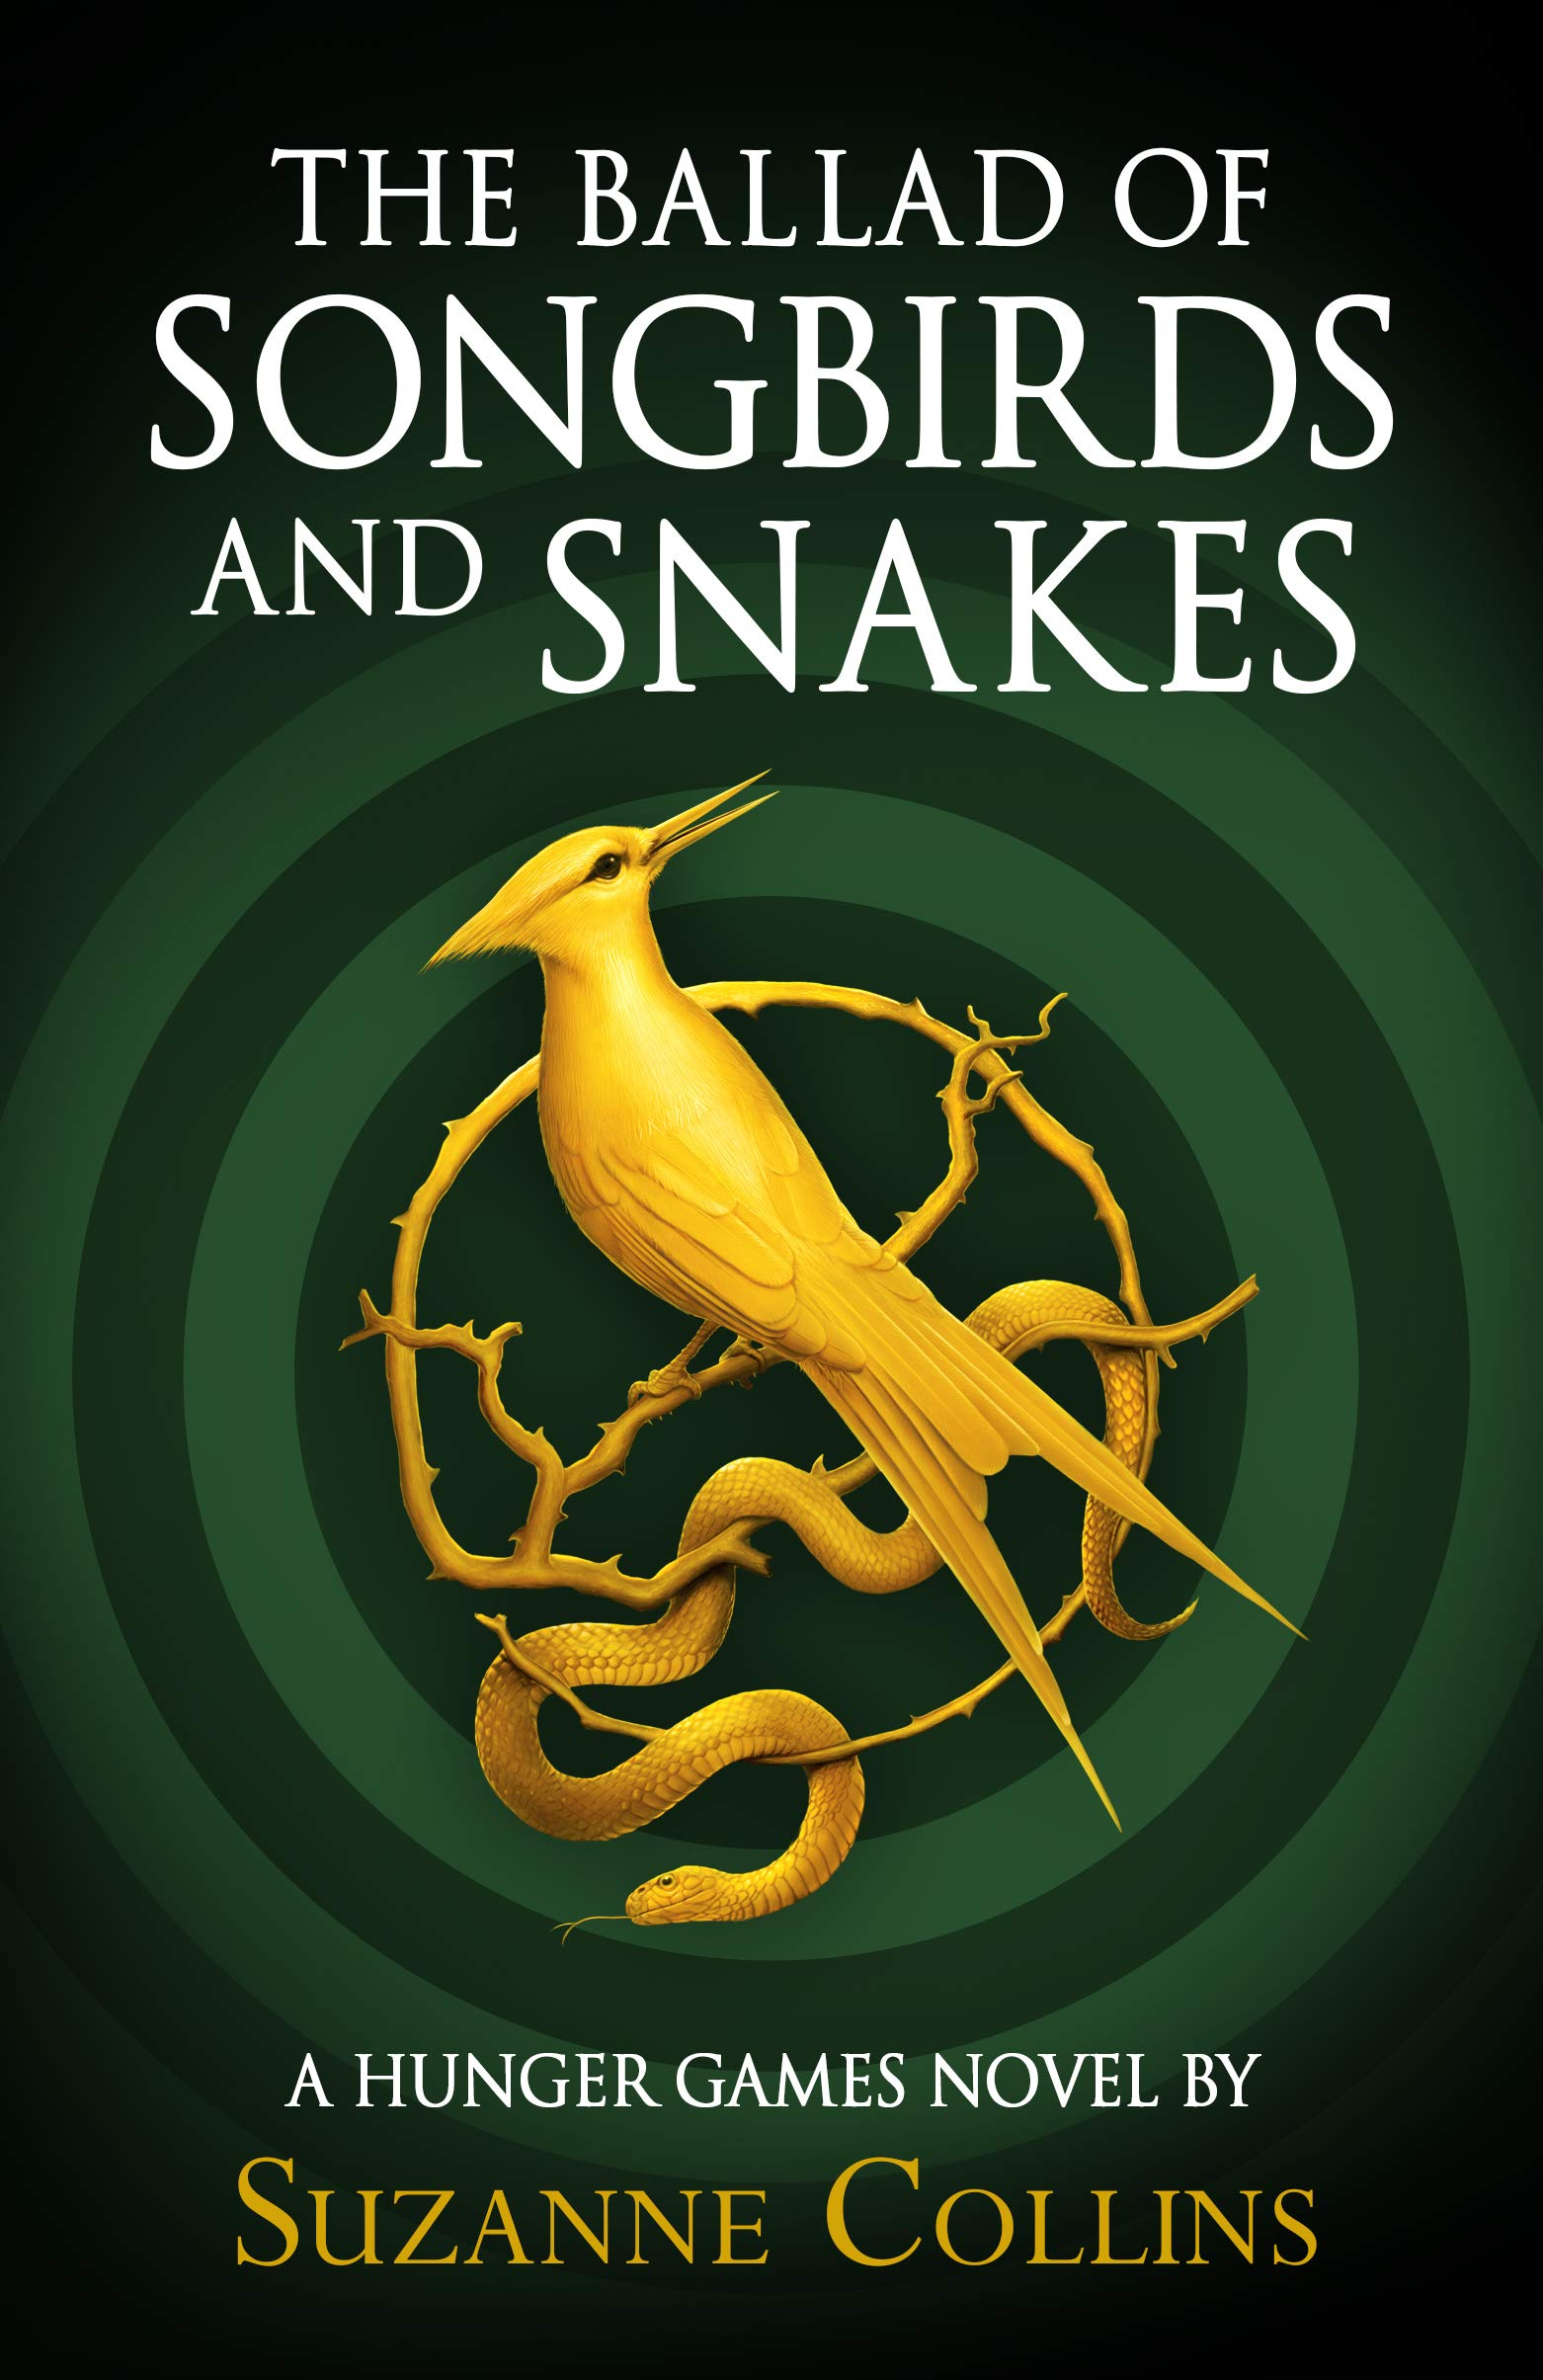 Image for The Ballad of Songbirds and Snakes (A Hunger Games Novel) (The Hunger Games)